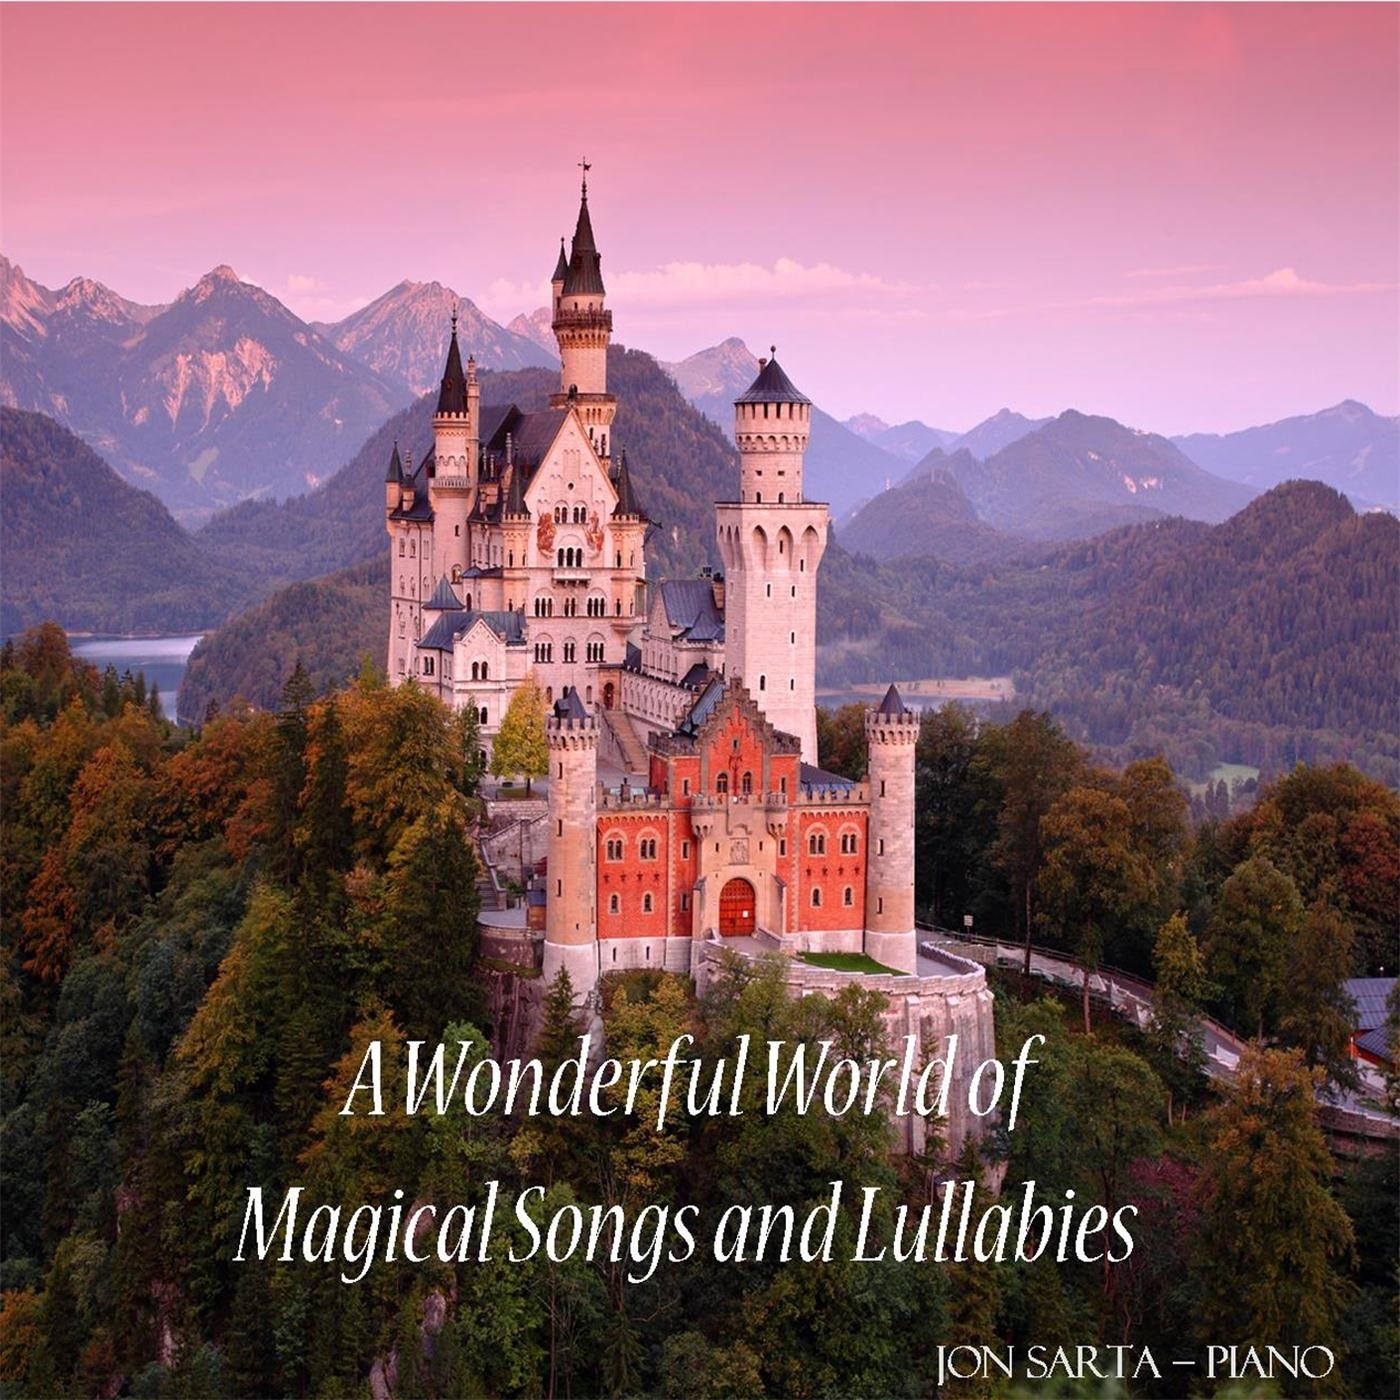 A Wonderful World of Magical Songs and Lullabies